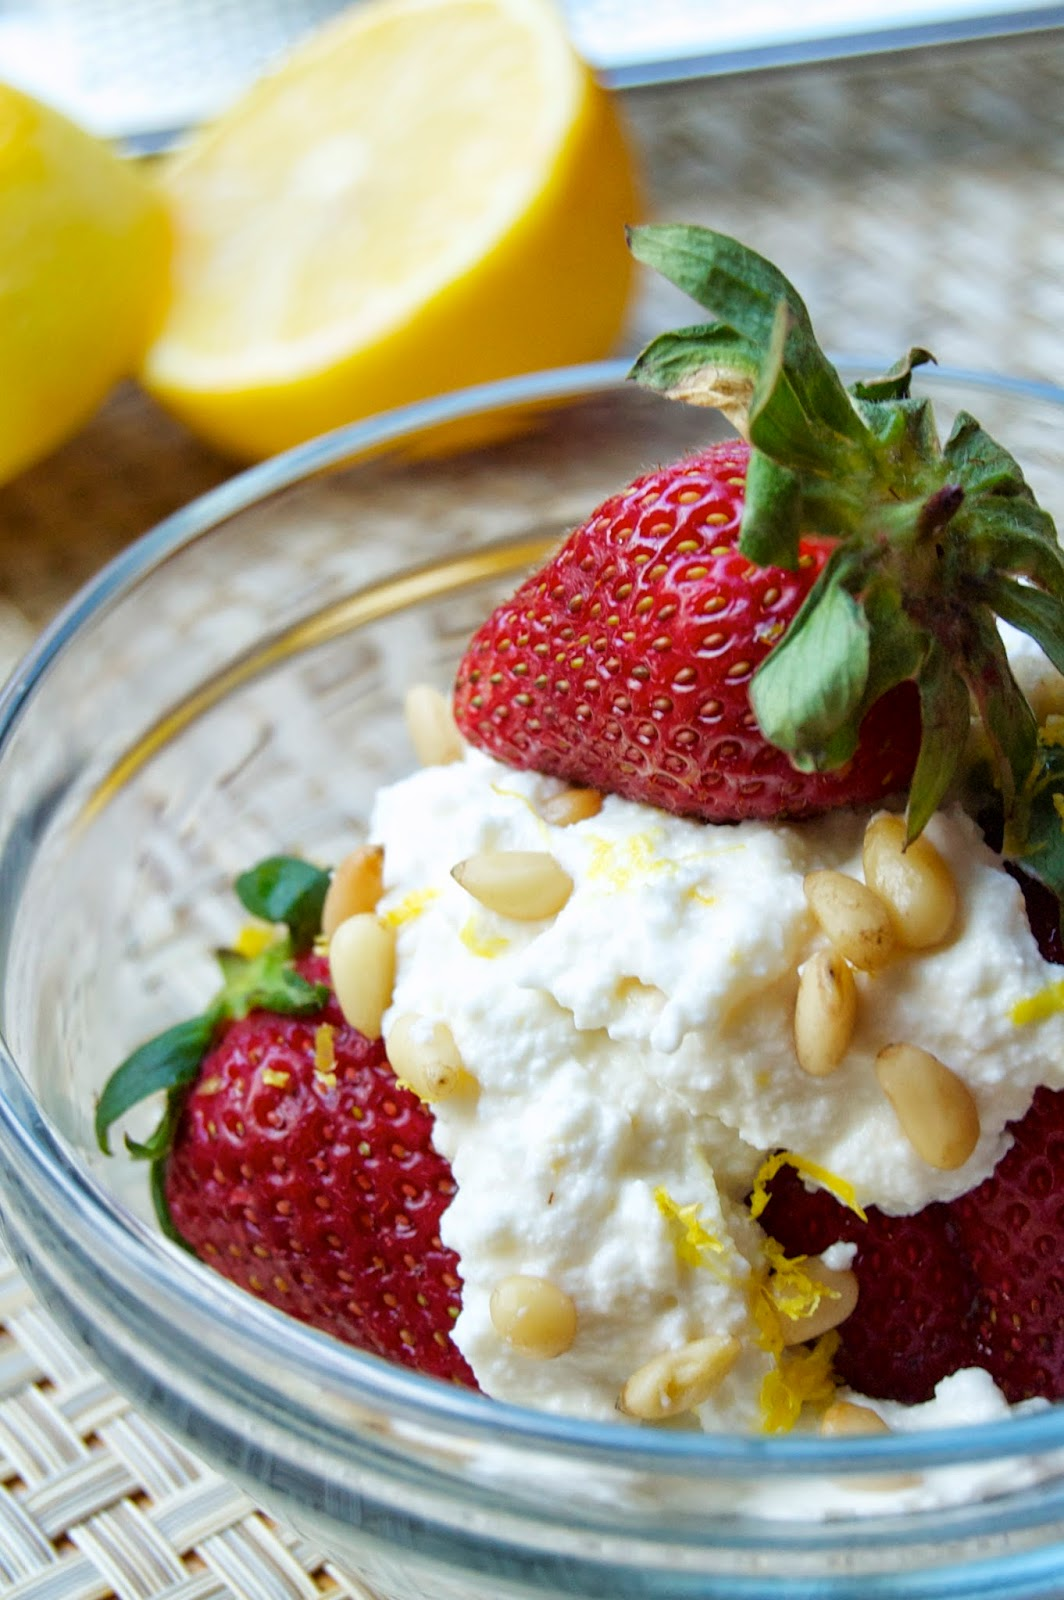 Strawberries with Lemon Honey Ricotta